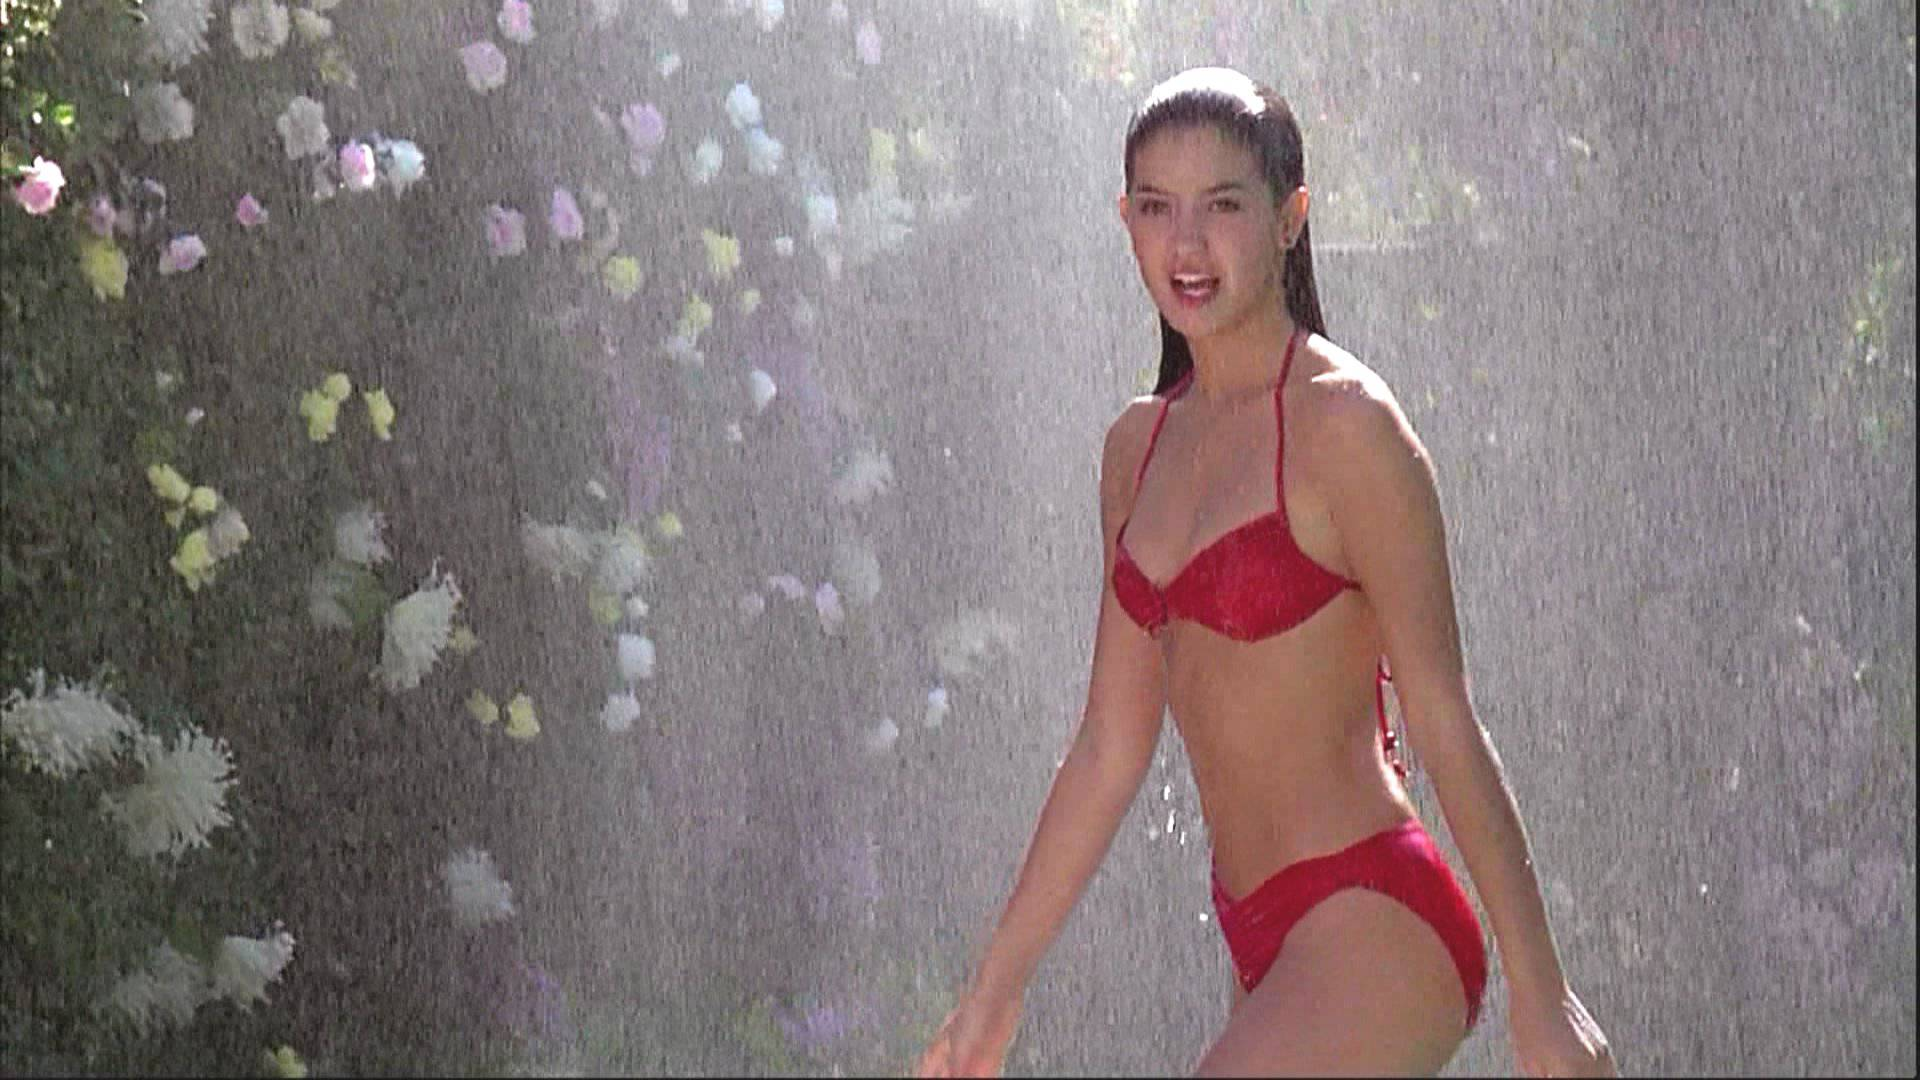 Fast times at ridgemont high phoebe cates